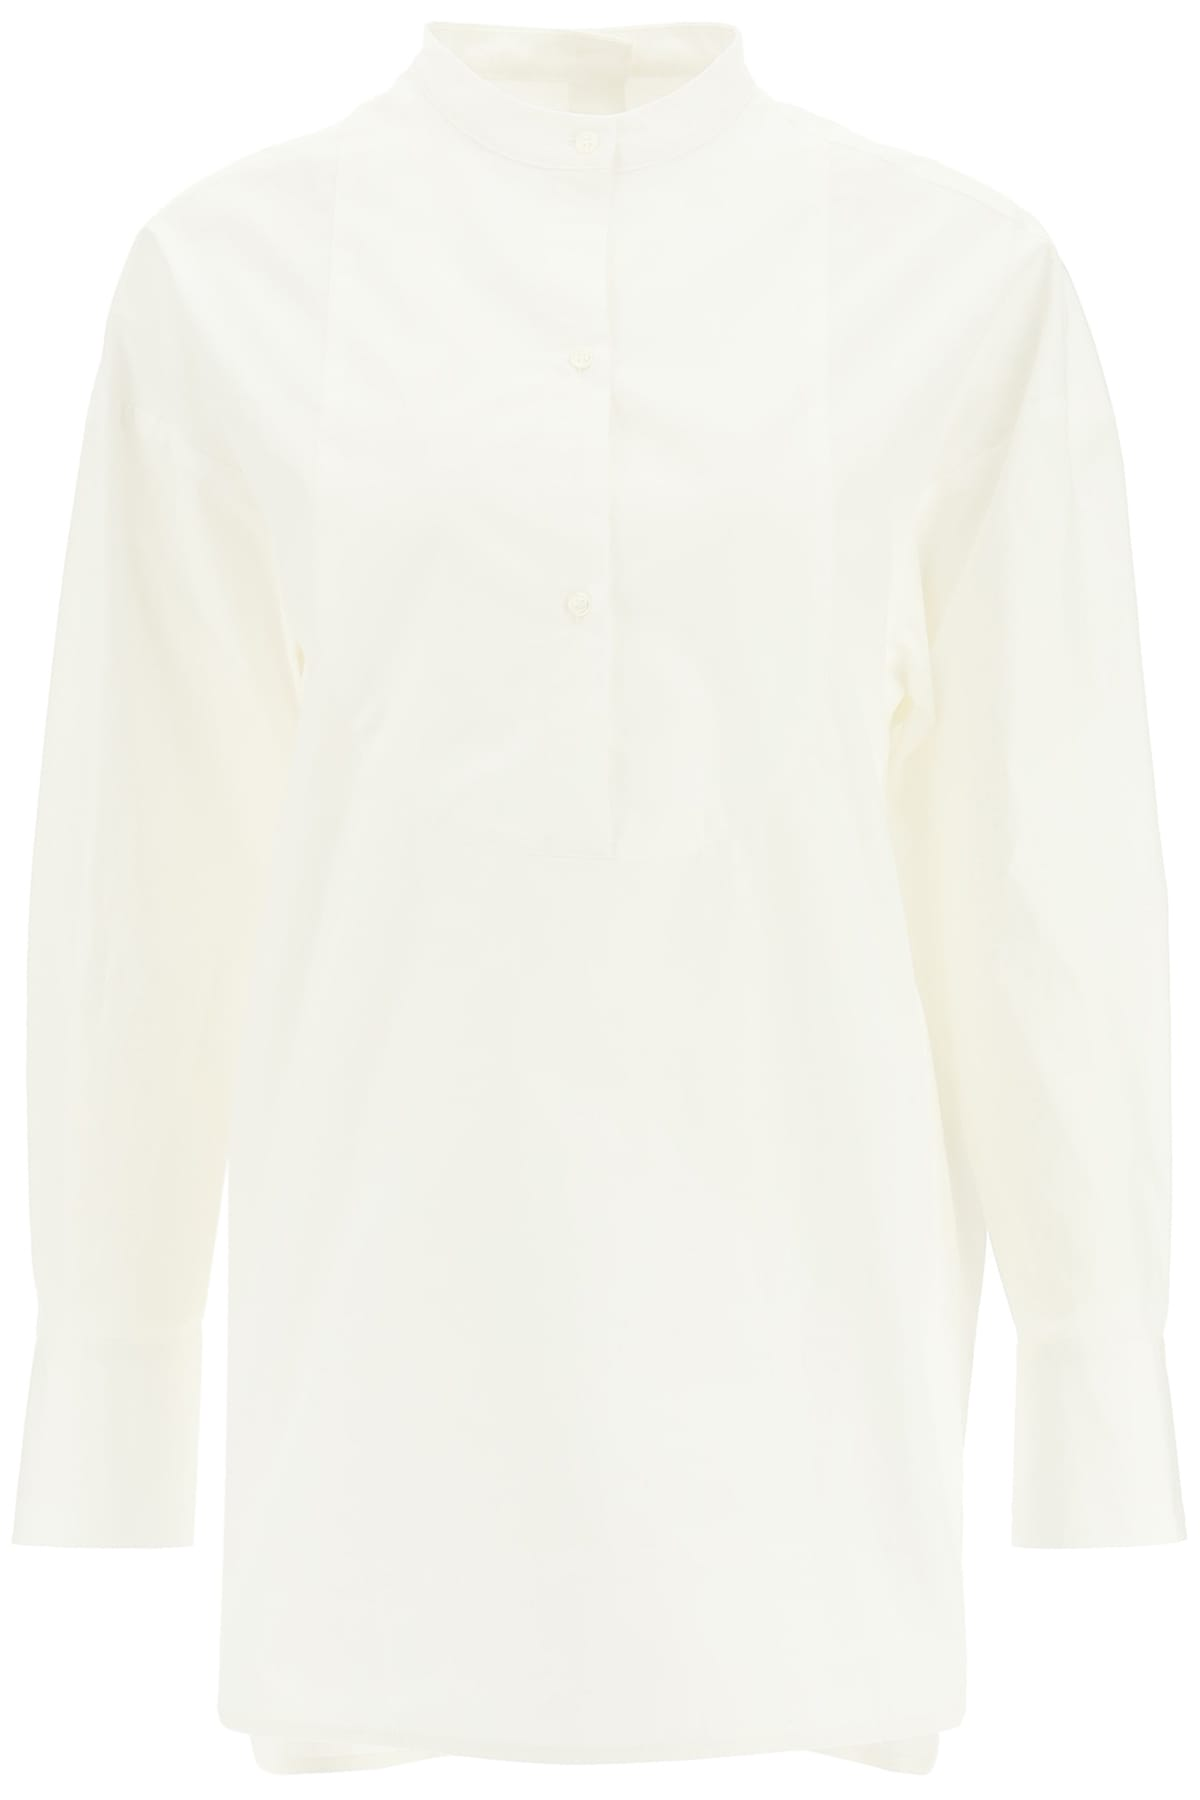 Loulou Studio Pini Cotton Shirt